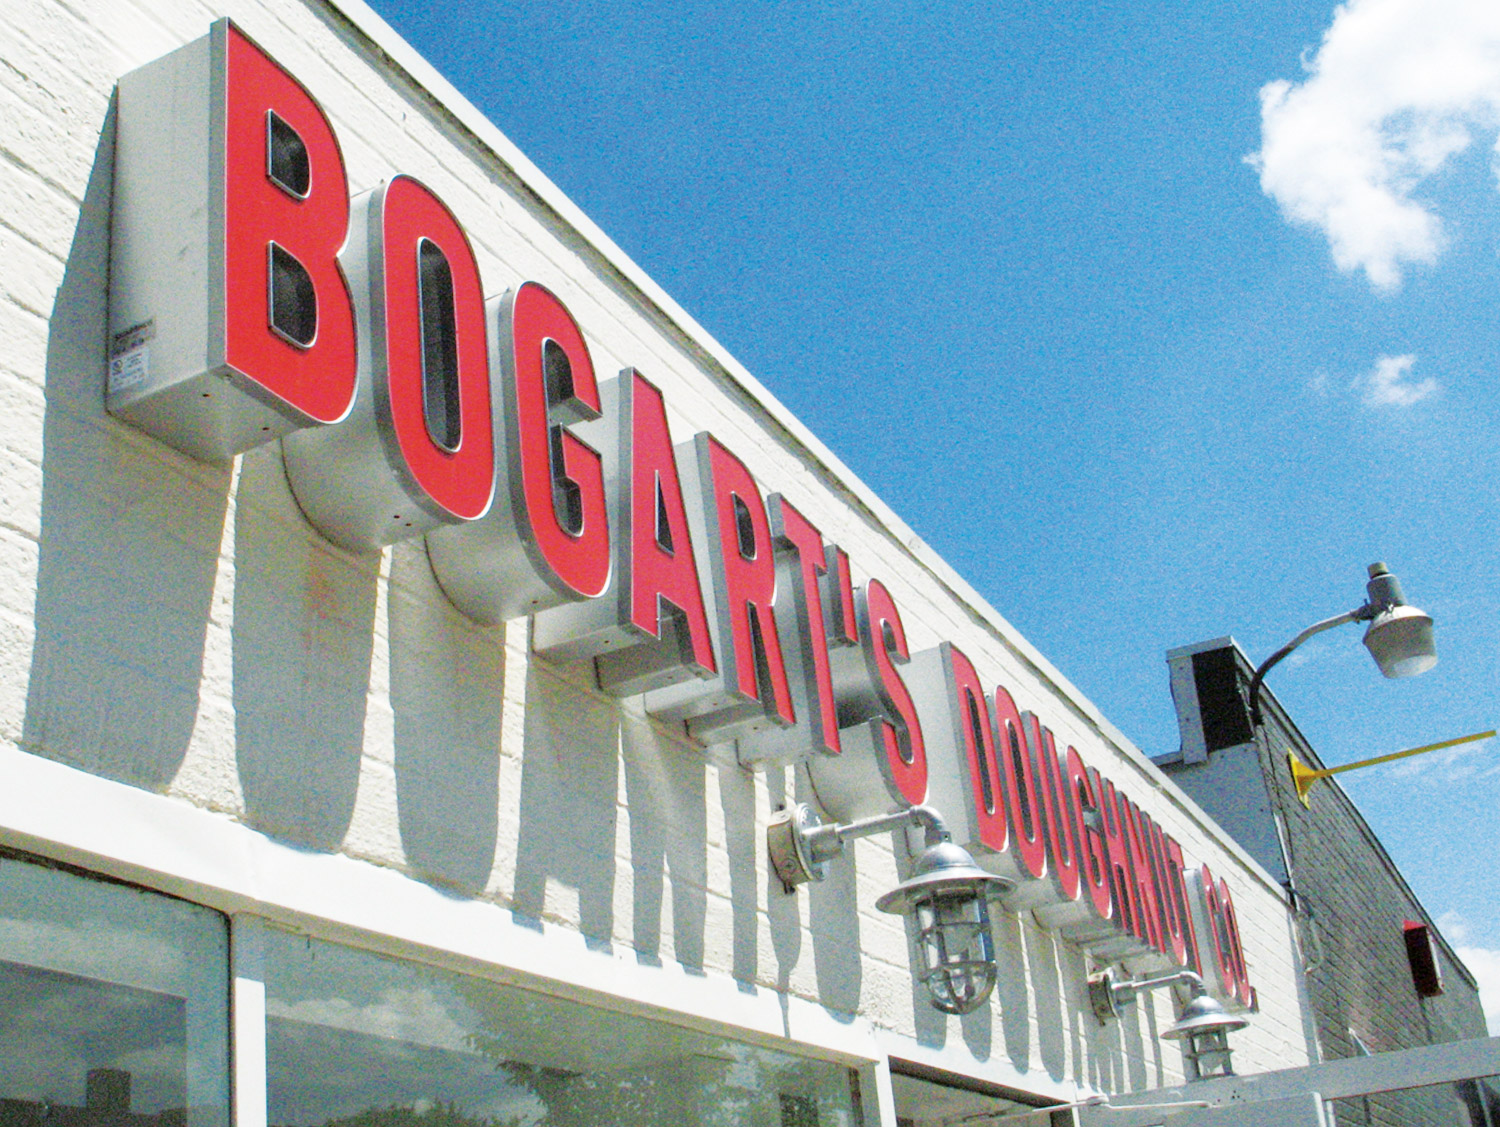 Bogarts-Doughnut-Co-Sign-02.jpg